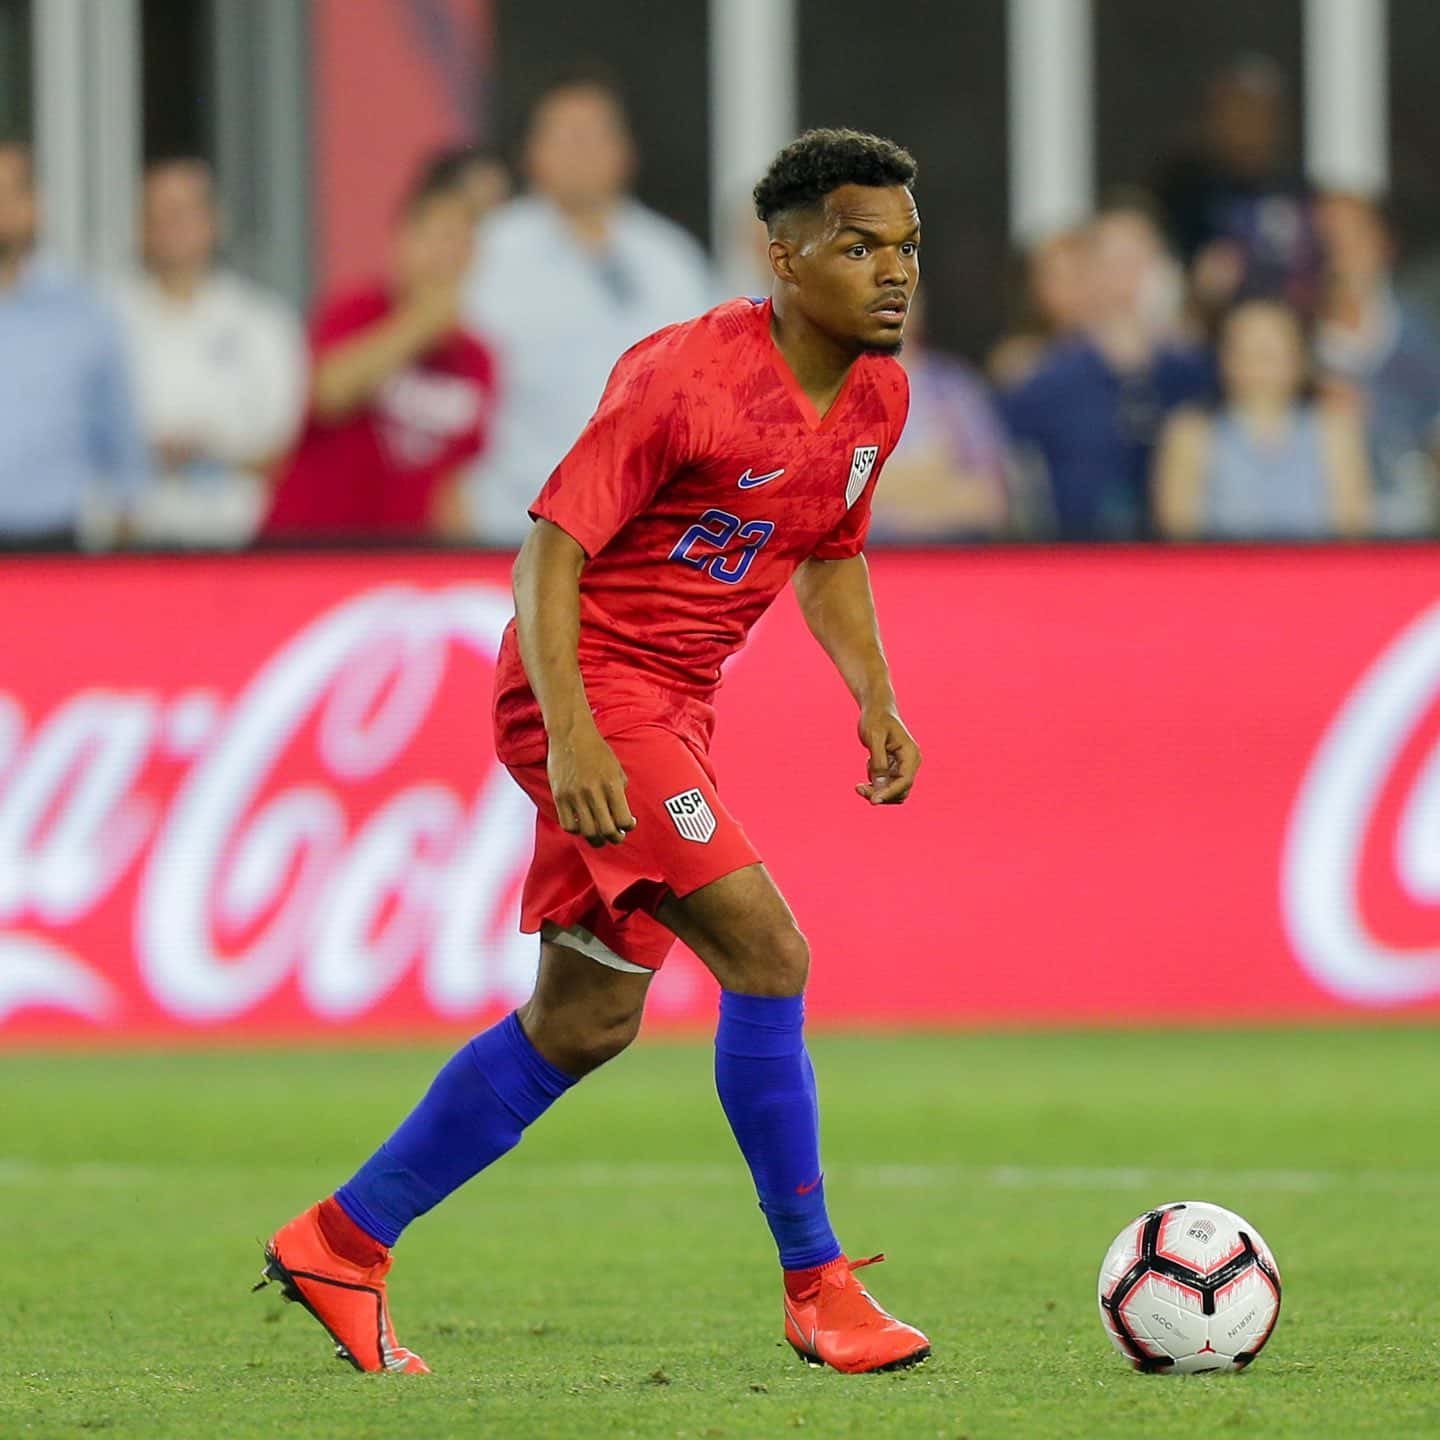 Injury Forces Duane Holmes to Withdraw from U.S. Men's National Team Roster for 2019 Concacaf Gold Cup